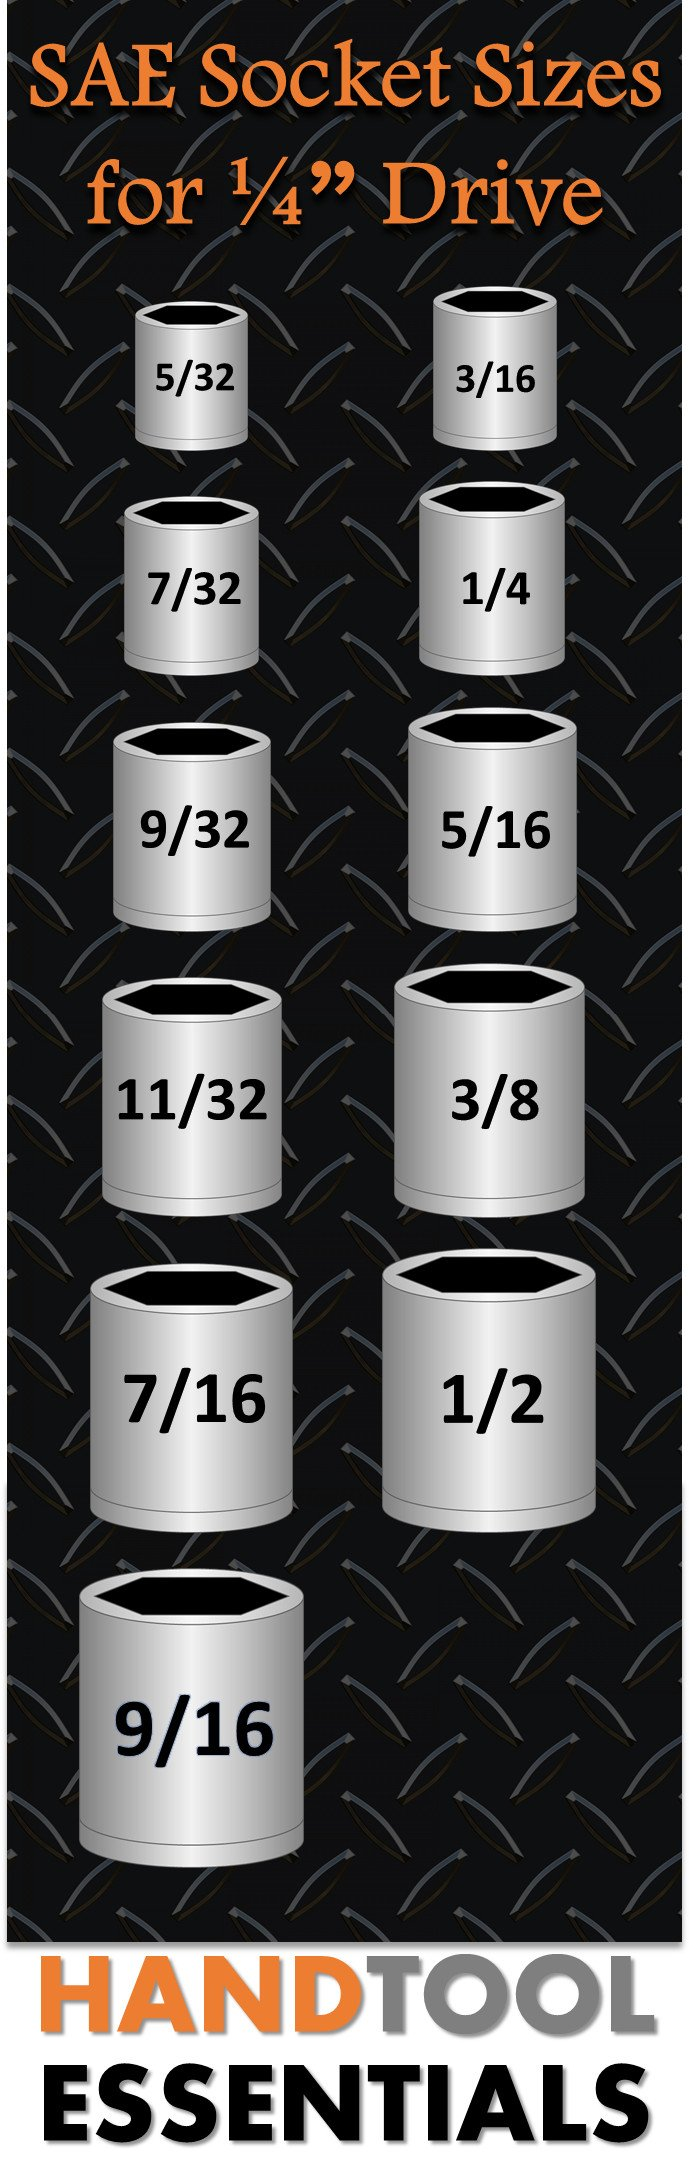 SAE Socket Sizes for Quarter-Inch Drive 1/4""